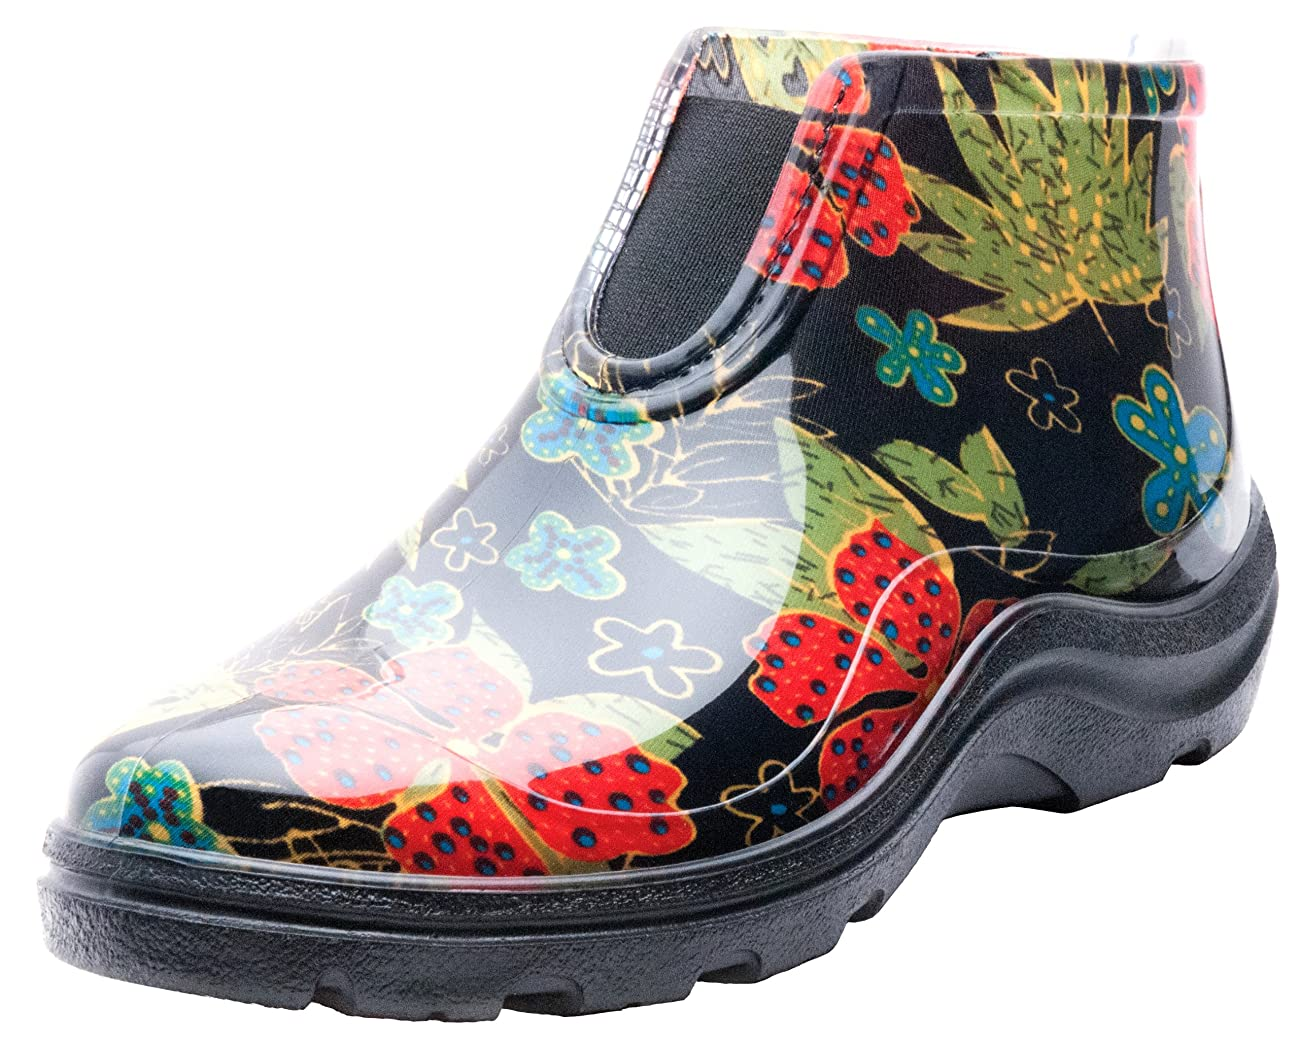 Sloggers Women's Waterproof Rain and Garden Ankle Boots with Comfort Insole, Midsummer Black, Size 8, Style 2841BK08